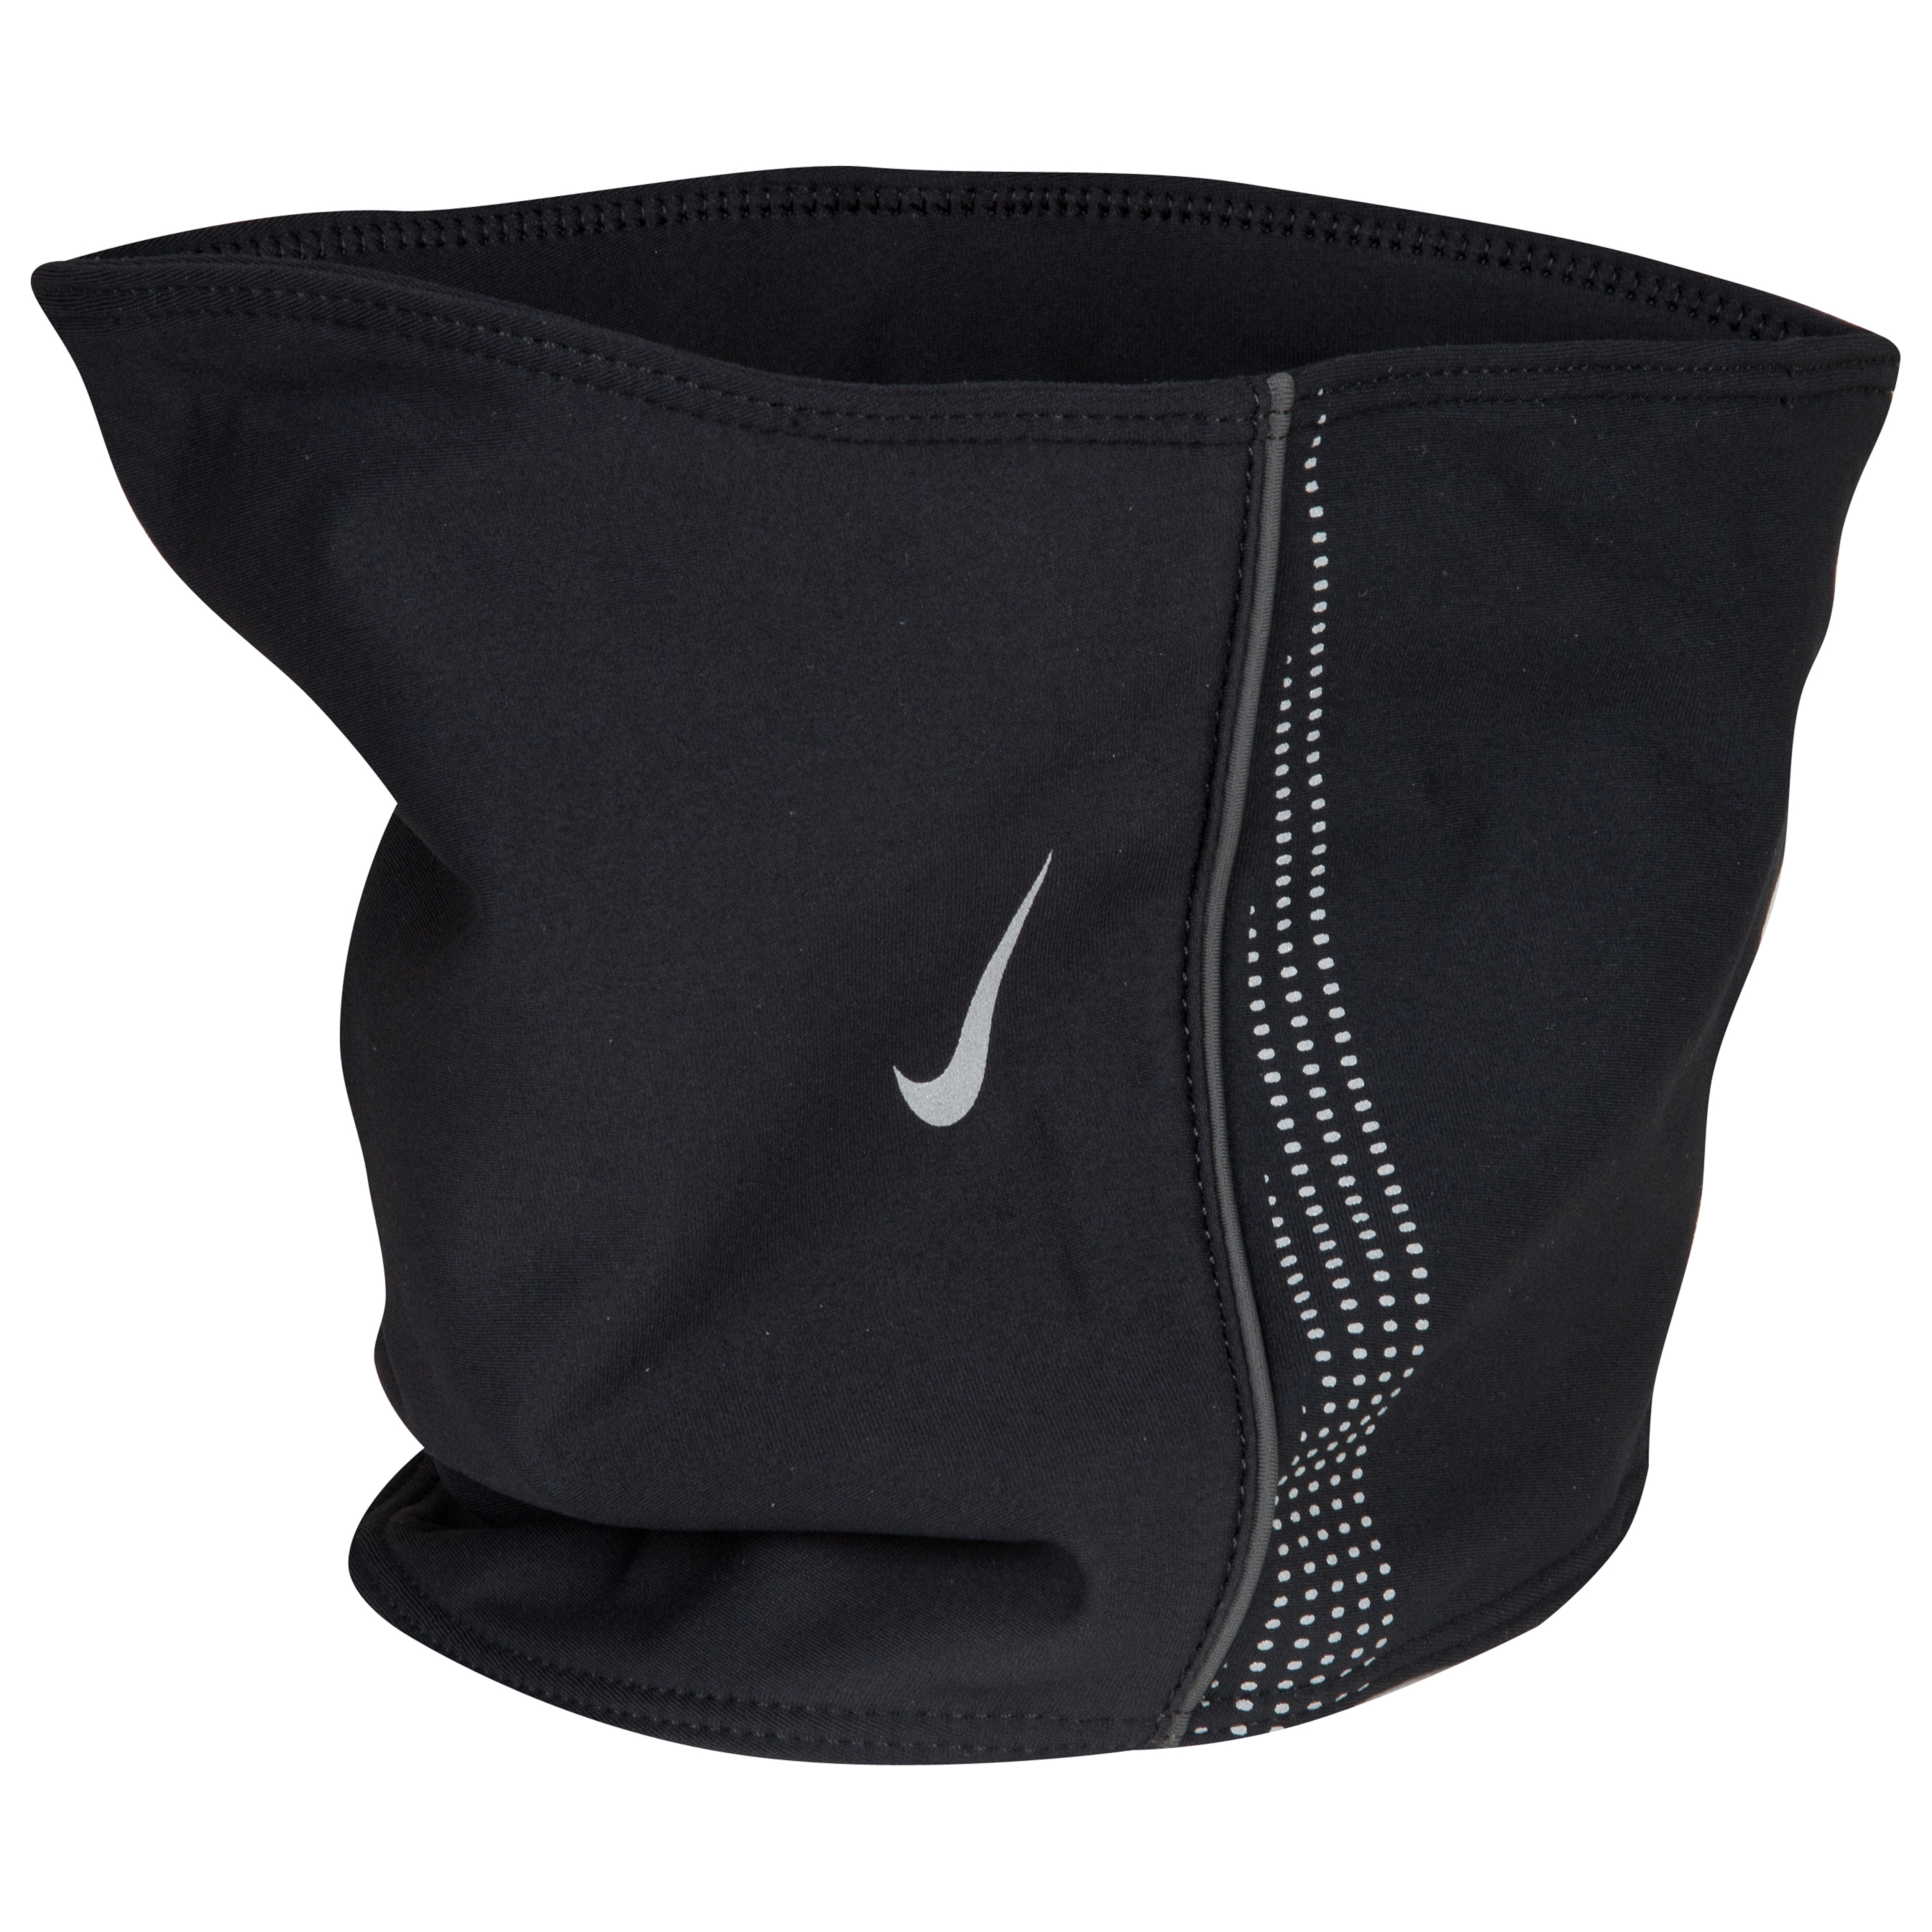 Nike Thermal Neck Warmer - Black/Anthracite